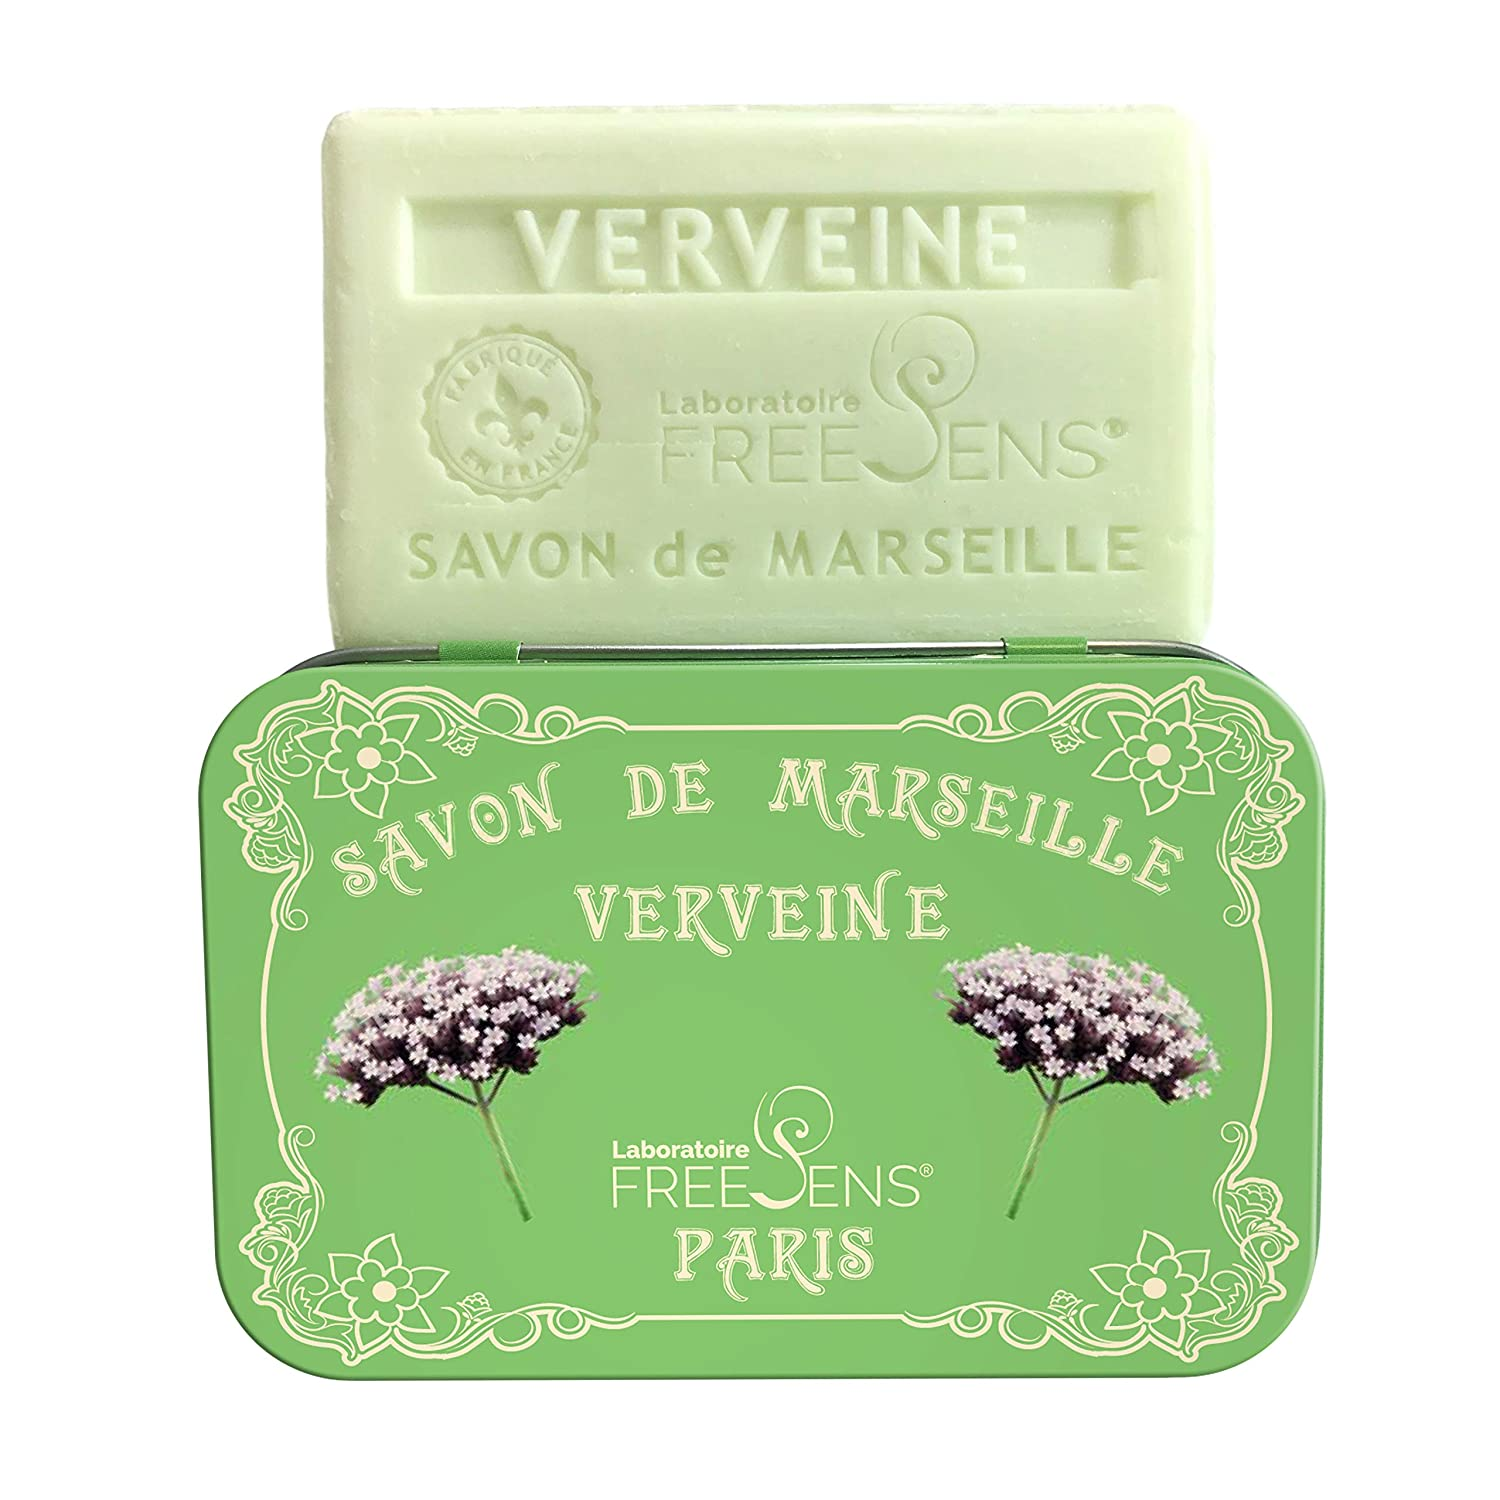 Savon de Marseille Bar Soap in Tin Box - Come discover 15 Eclectic Holiday Gifts Under $25 plus Holiday Gift Guides from 7 of Your Favorite Bloggers!